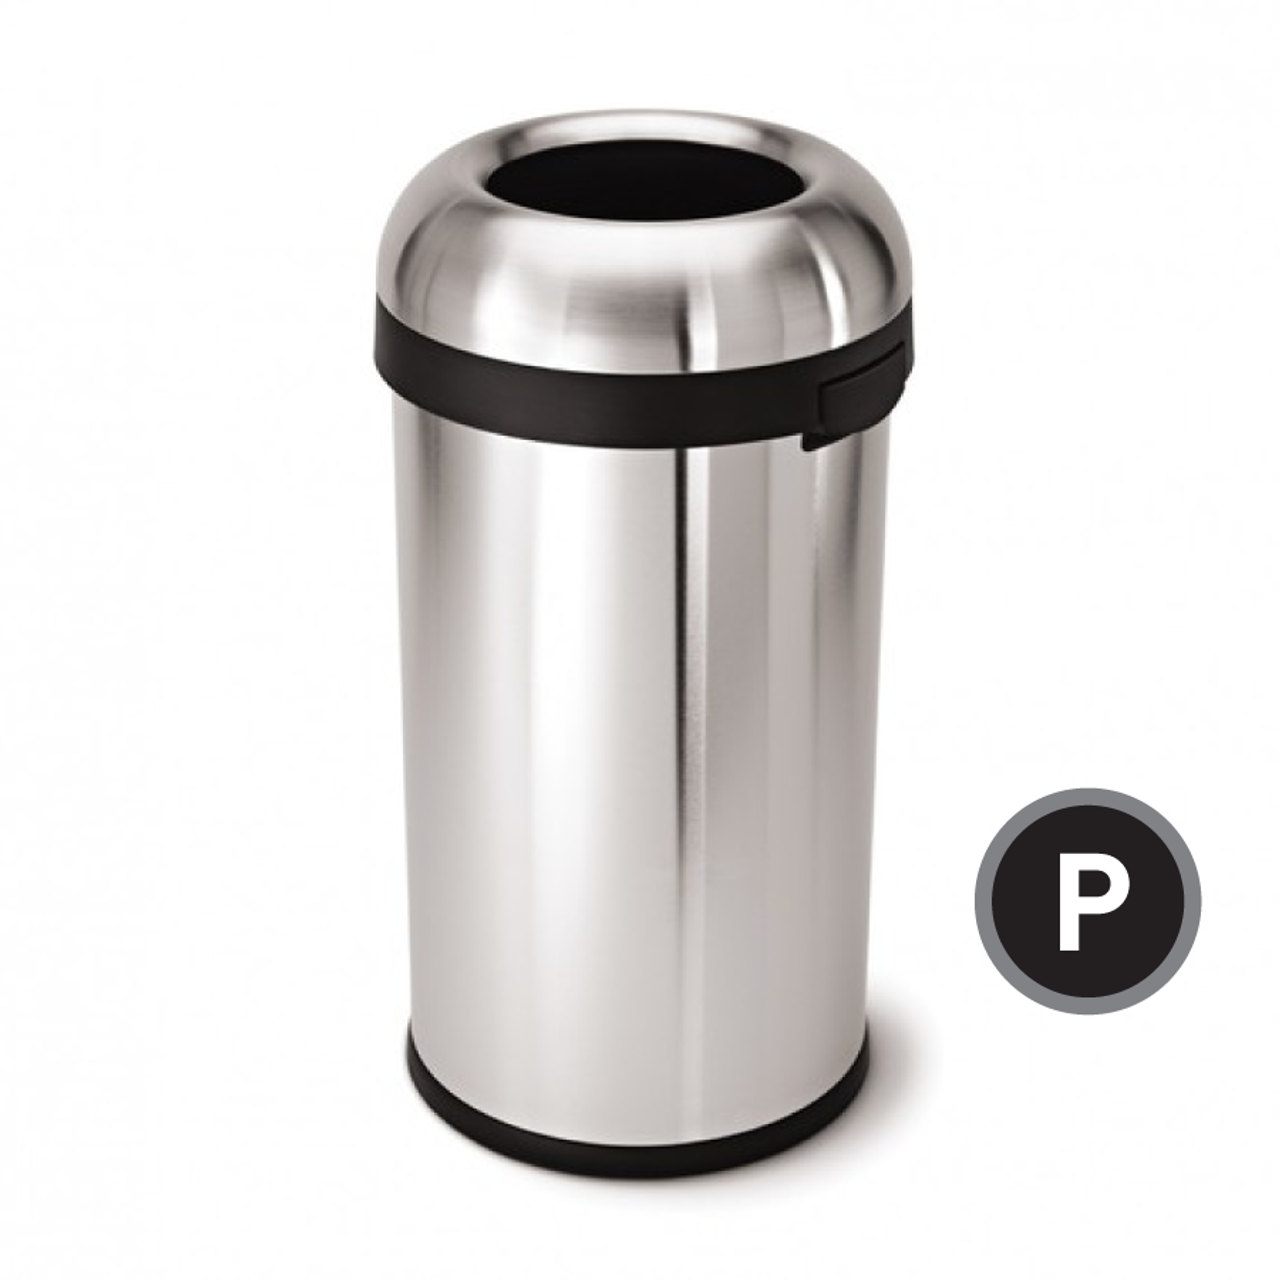 . Simplehuman Bullet Open Trash Can  Stainless Steel  60 liter  CW1407